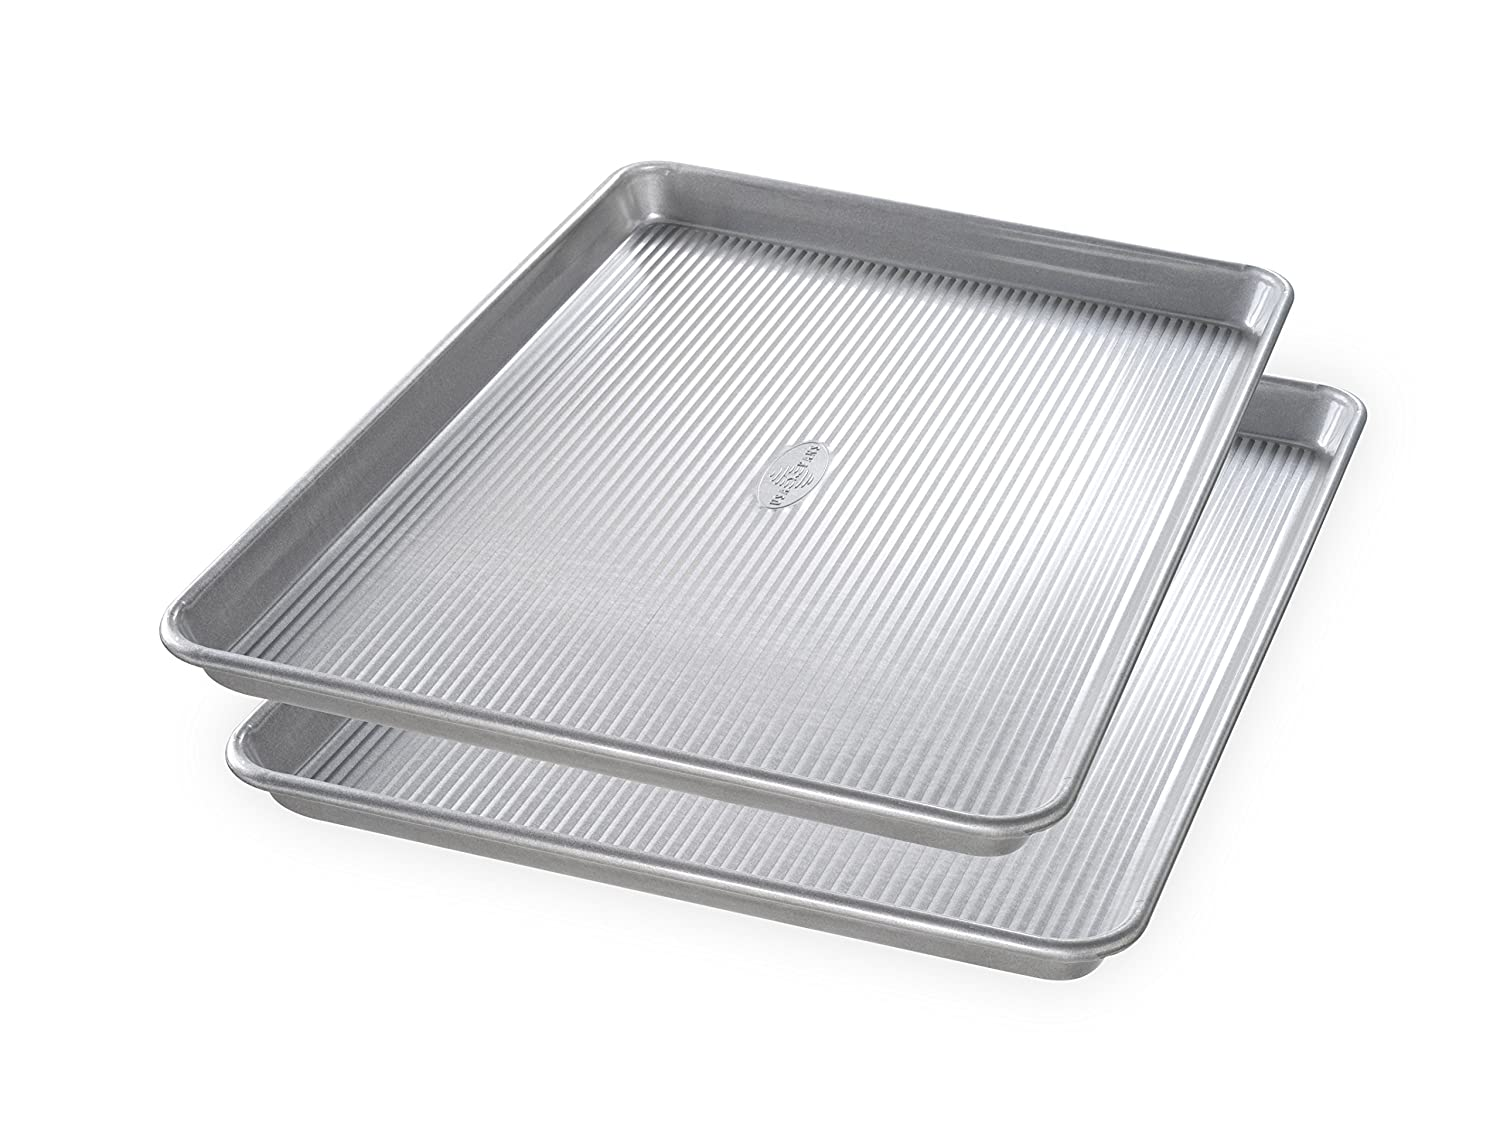 USA Pan Bakeware 1300ST Half Sheet Pan, Set of 2, Aluminized Steel